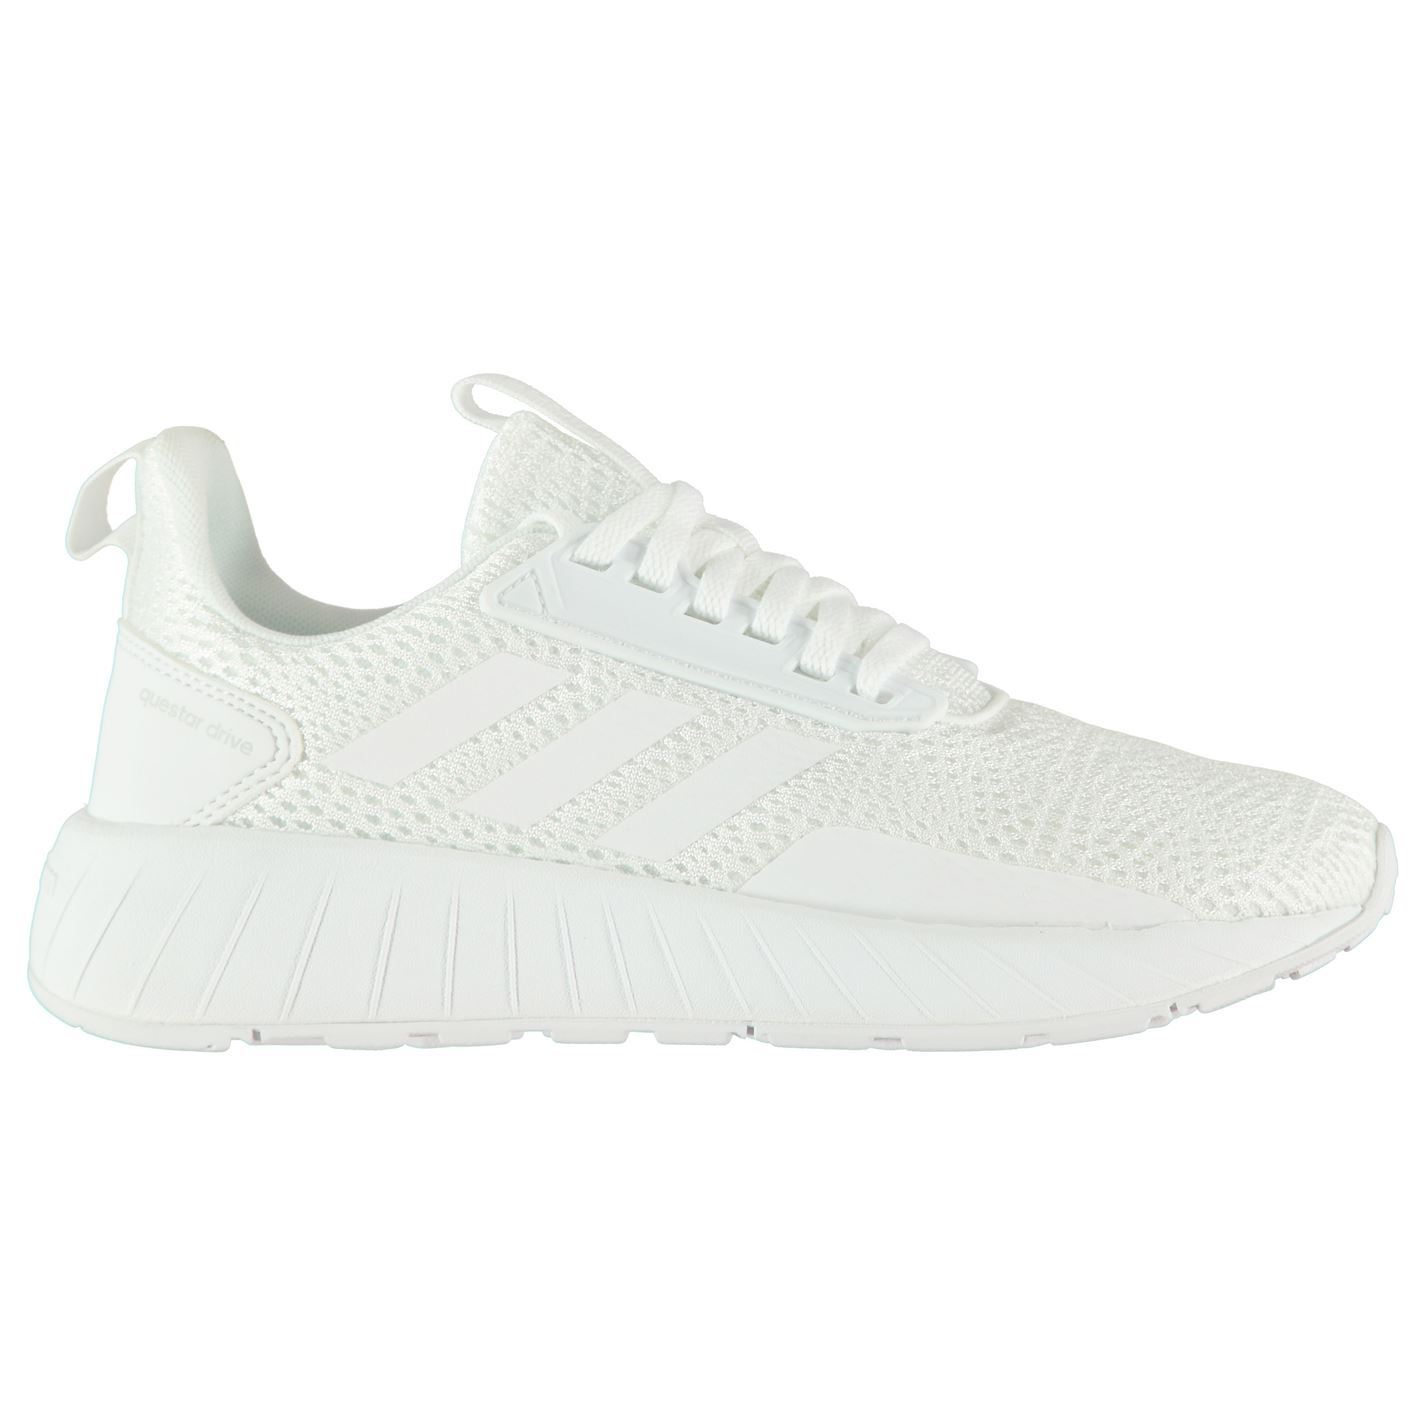 super popular 3f6c8 9f2aa ... adidas Questar Drive Running Shoes Womens White Run Jogging Trainers  Sneakers ...